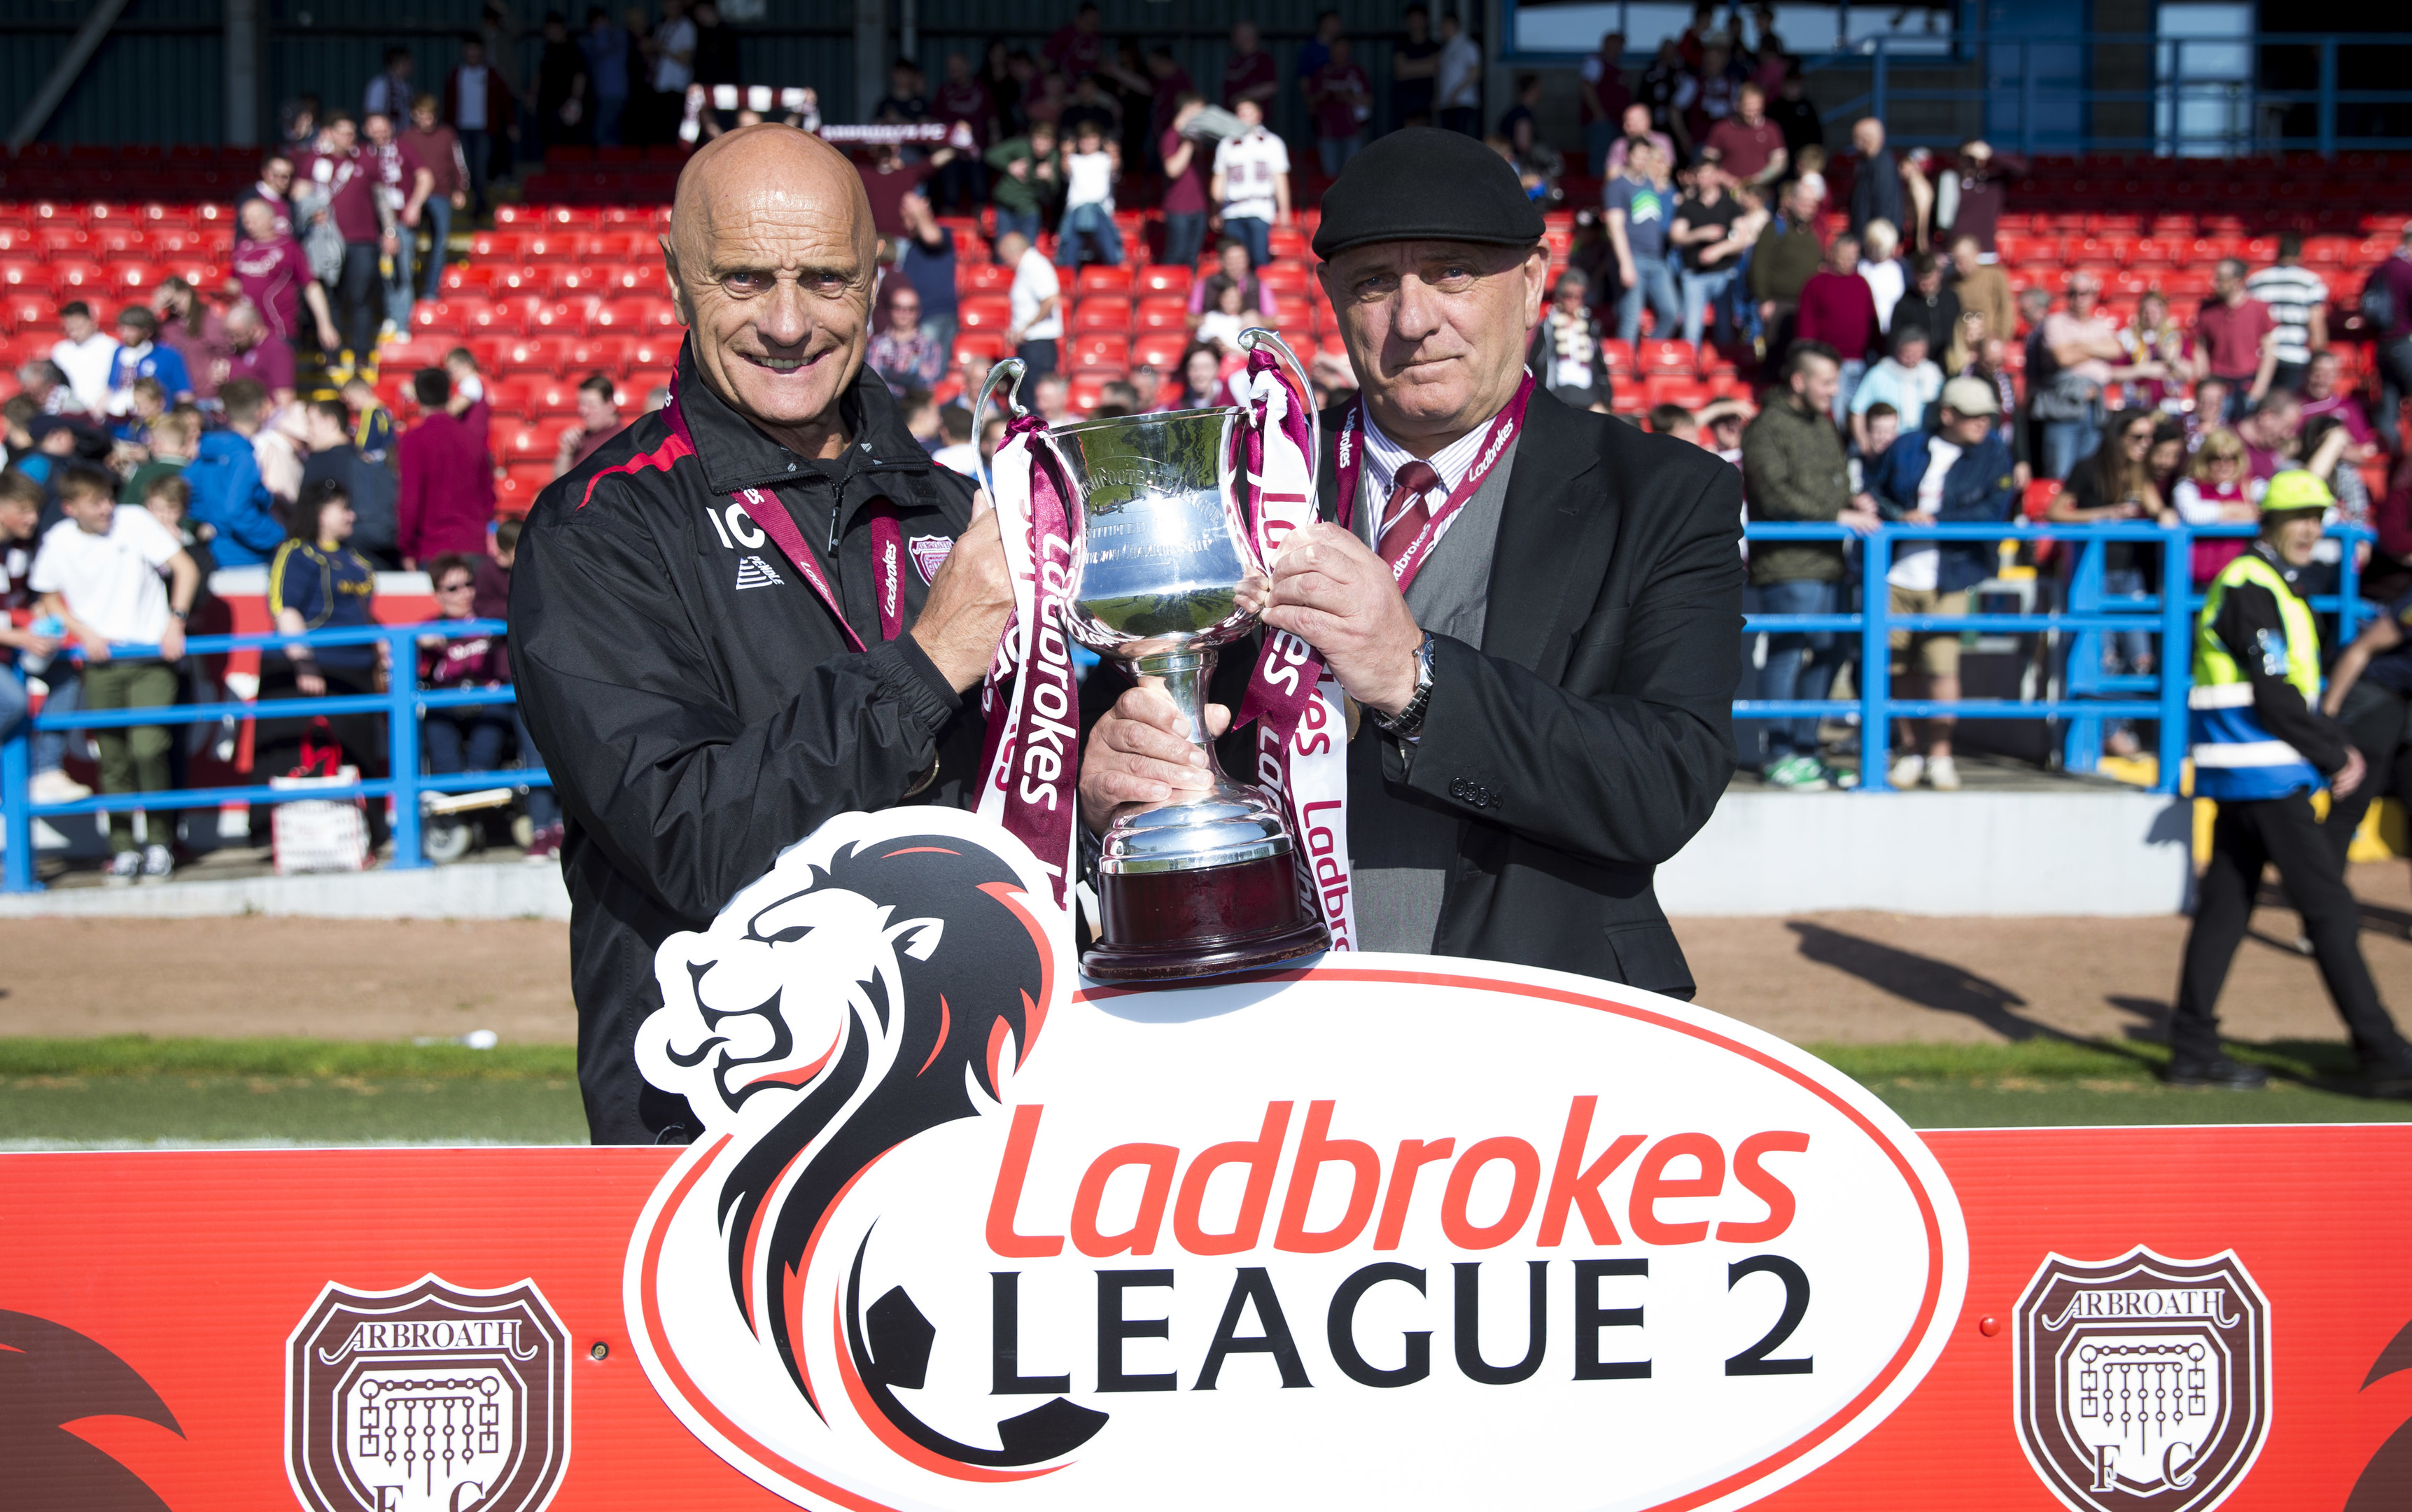 Arbroath were crowned champions last weekend.